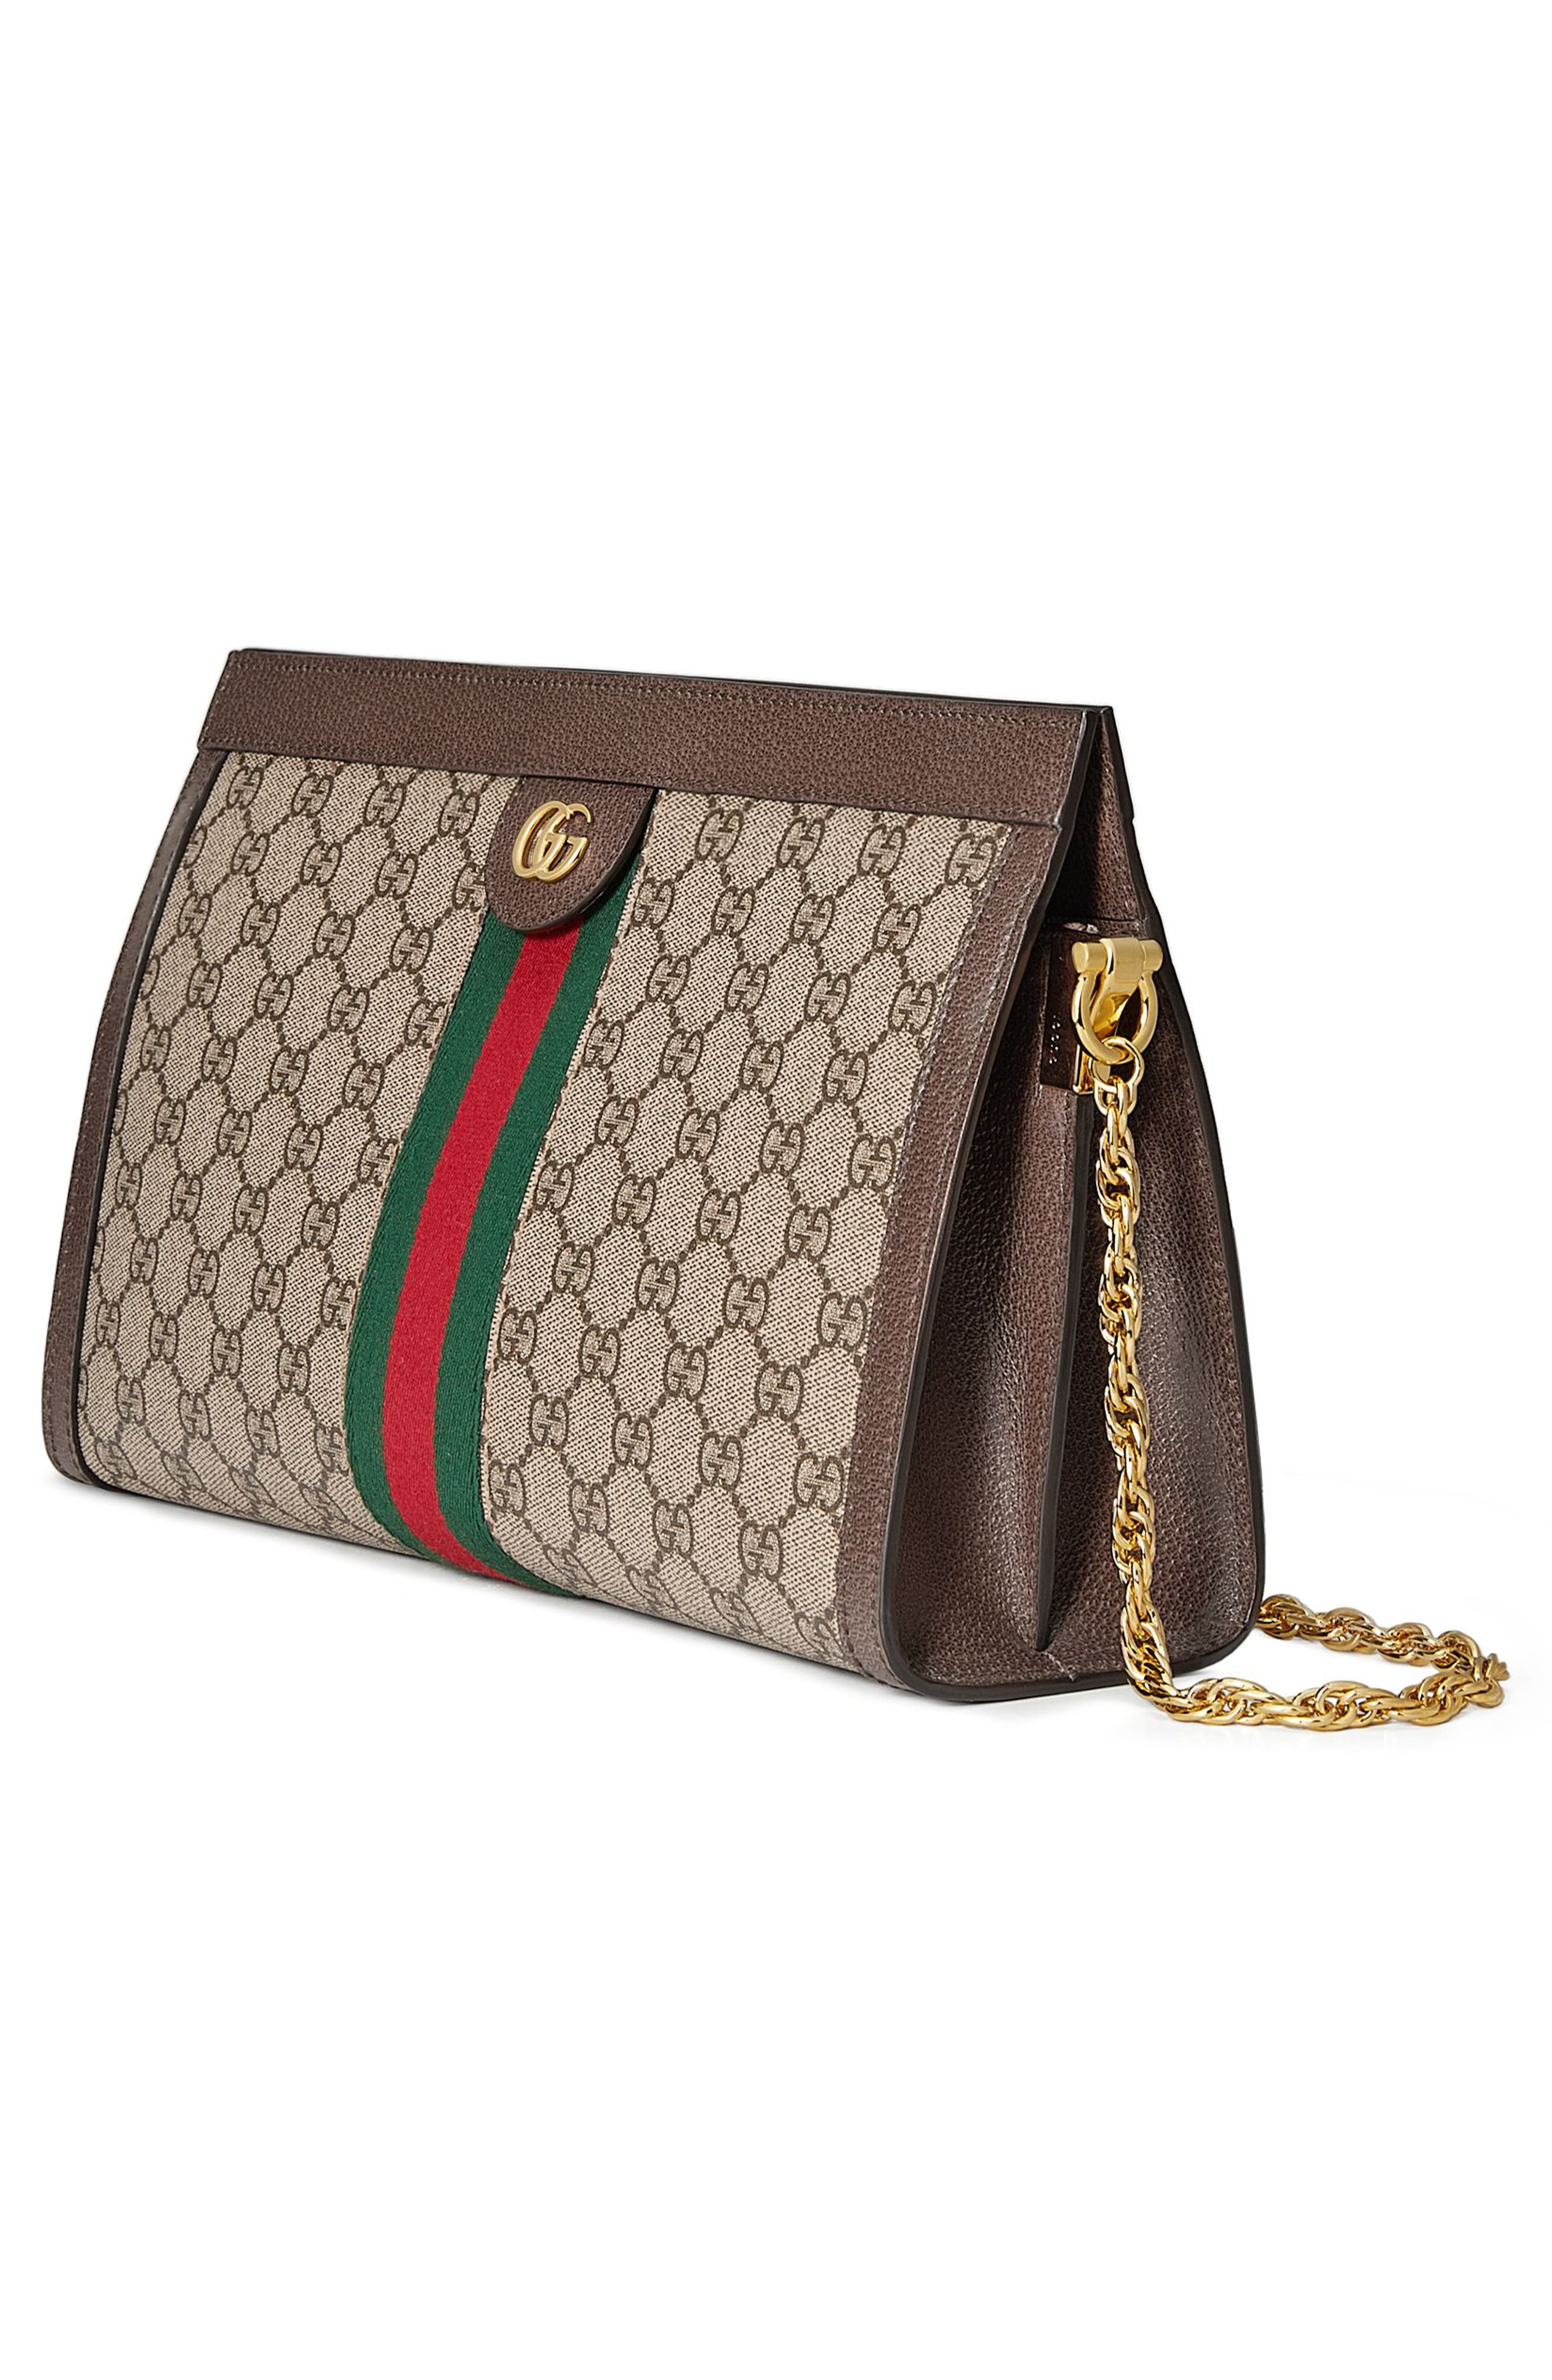 GUCCI, GG Supreme Canvas Shoulder Bag, Alternate thumbnail 4, color, BEIGE EBONY/ NERO/ VERT/ RED